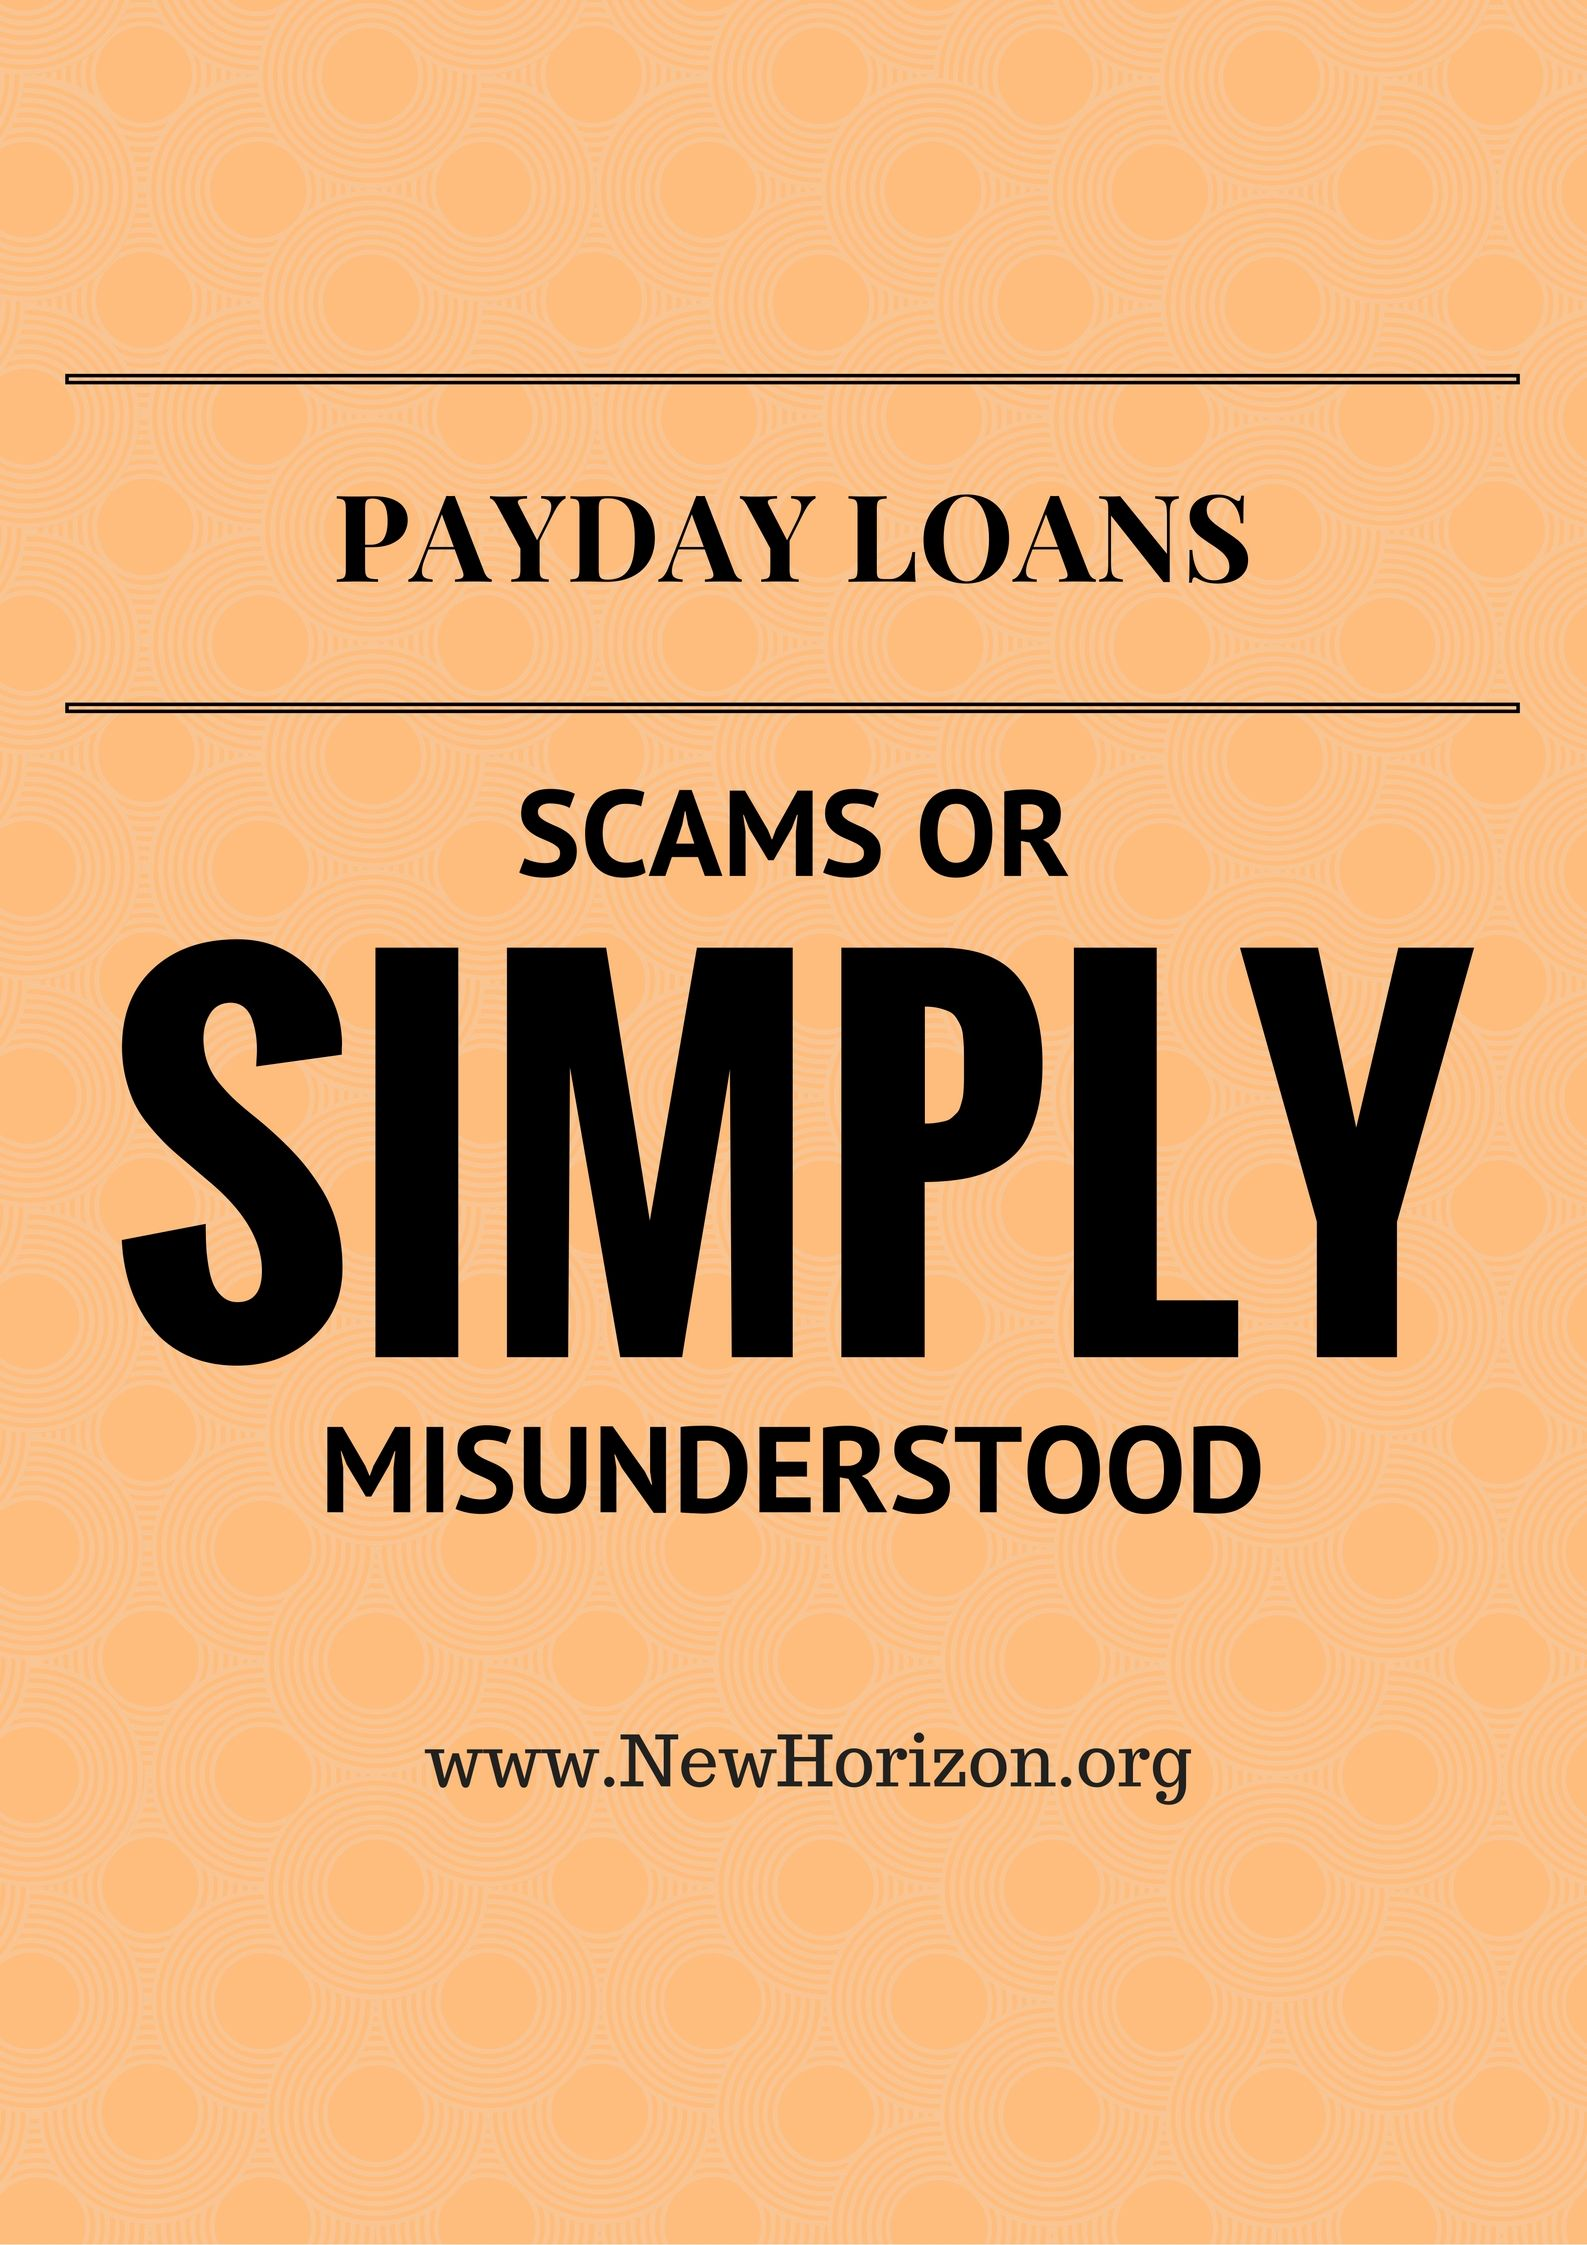 Is sunny payday loans safe image 2